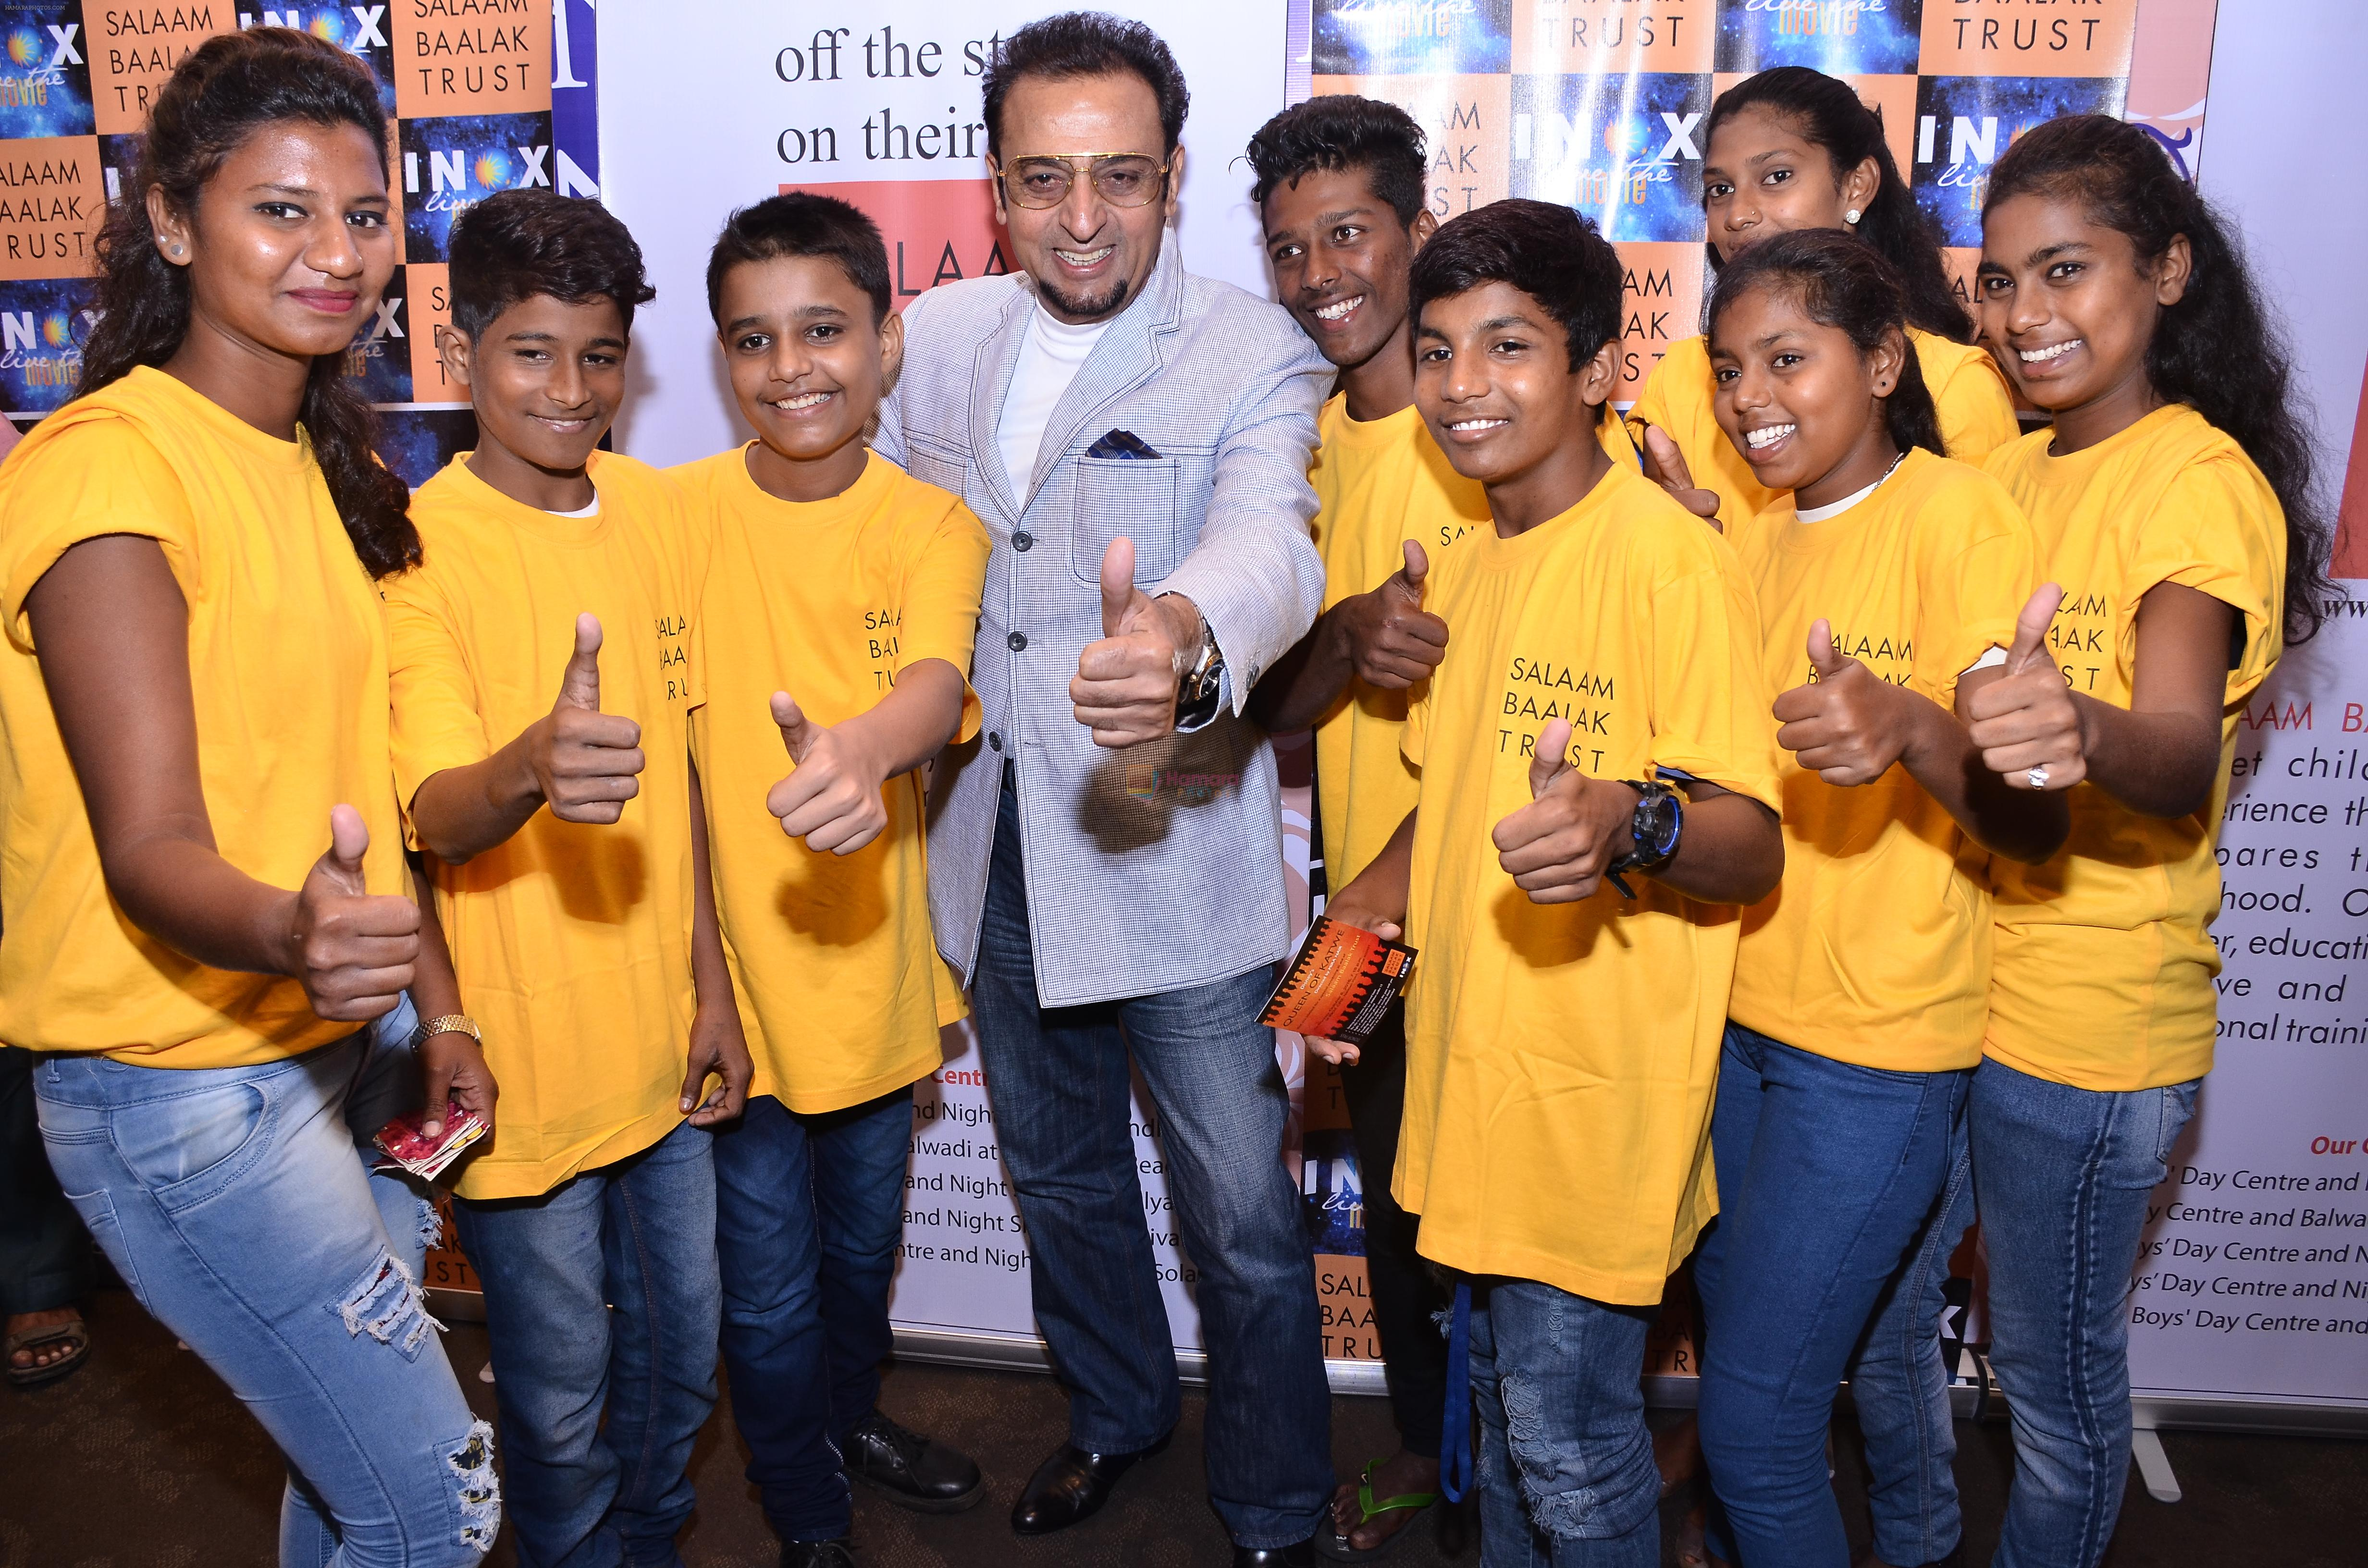 Gulshan Grover along with kids of Salaam Balak trust at INOX, Nariman point